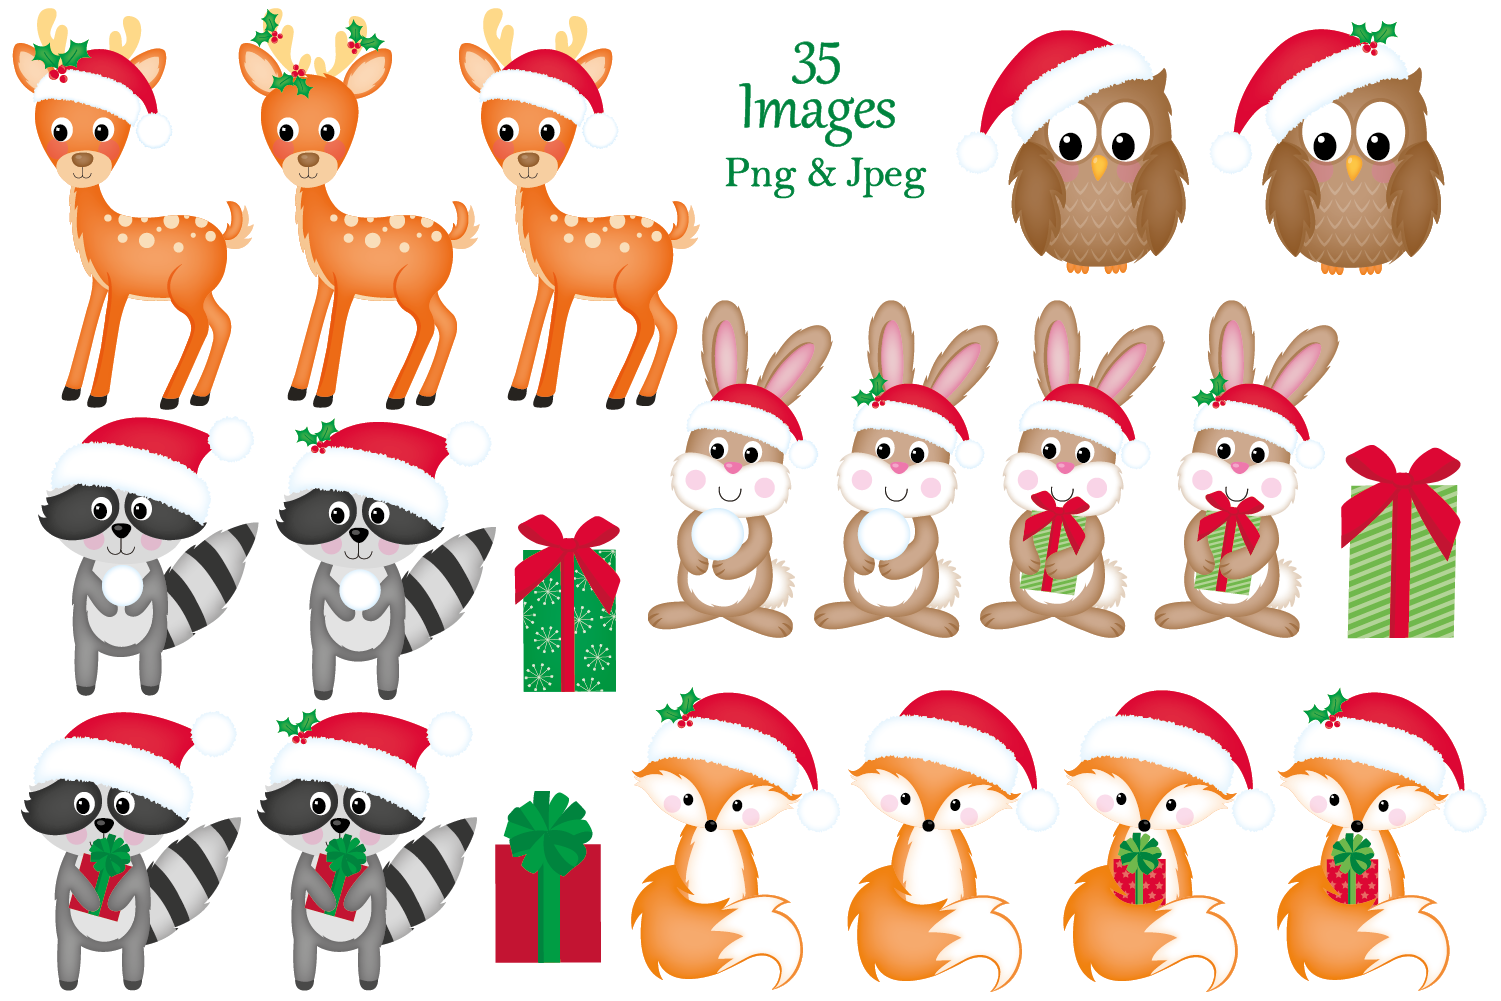 Christmas clipart,Christmas graphics & illustrations,Animals example image 2